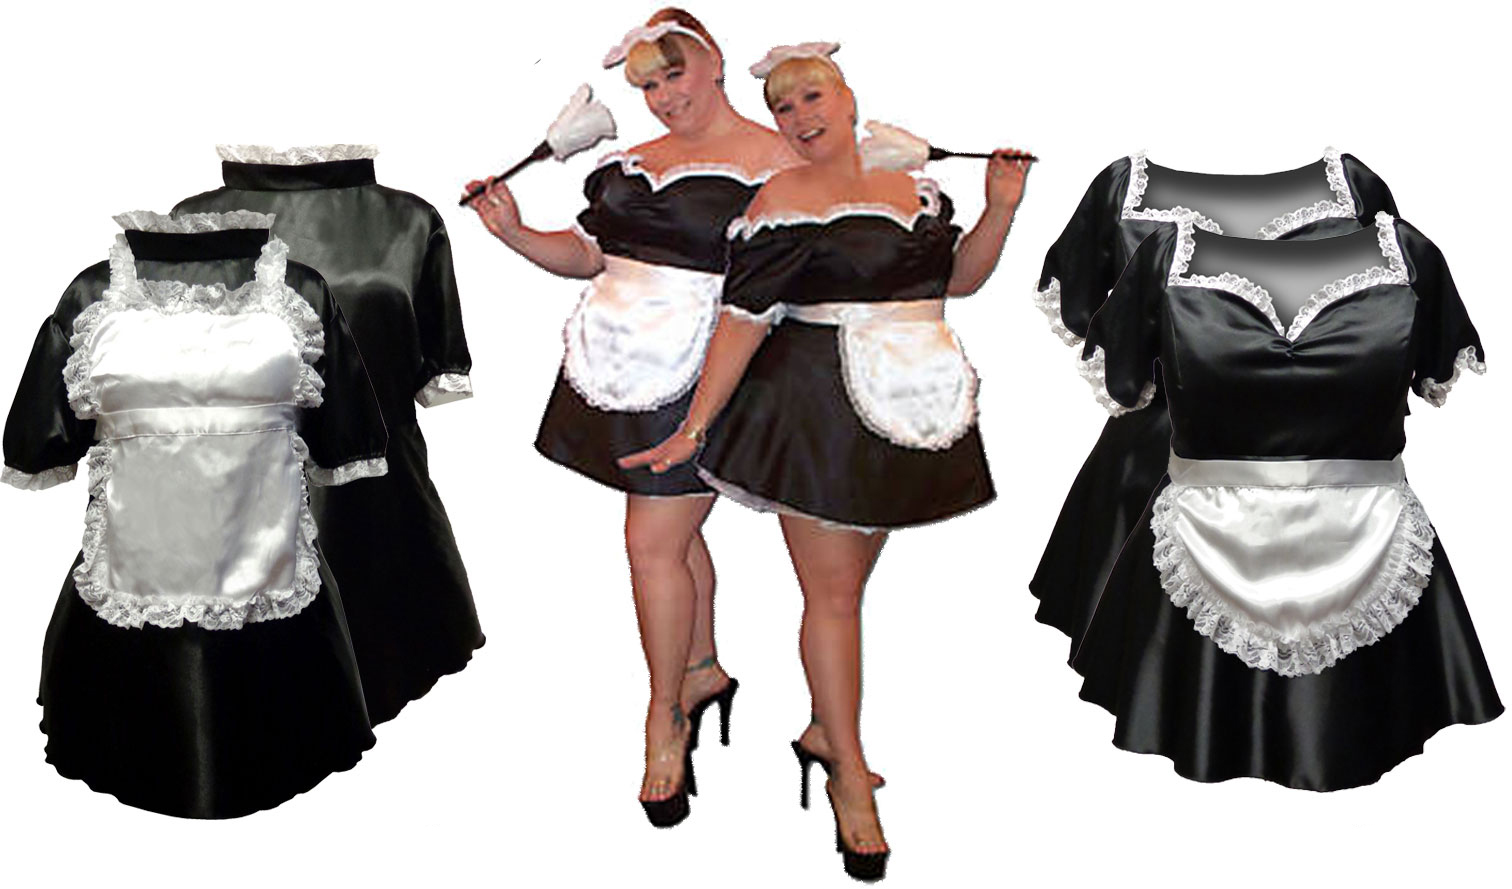 Black u0026 White French Maid Costume Sexy Plus Size u0026 Supersize Halloween Costume! 1x 3x  sc 1 th 172 & SALE! HOT! Black u0026 White French Maid Costume Sexy Plus Size ...